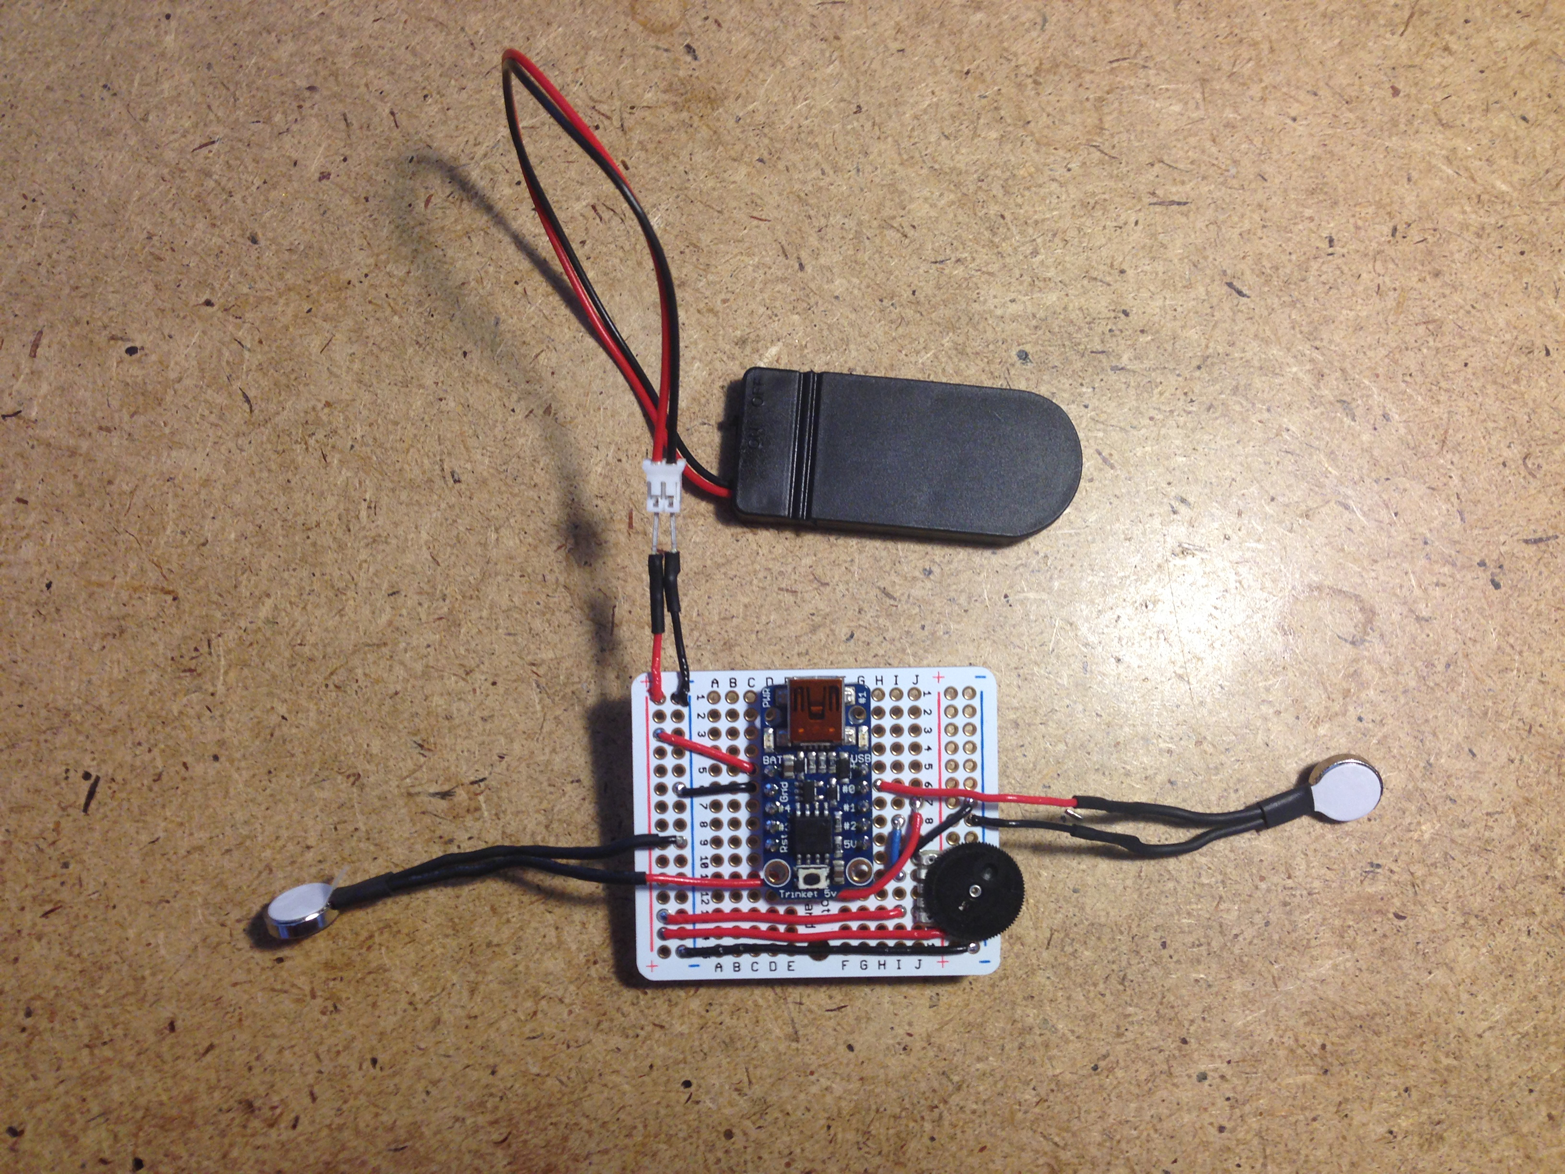 The second prototype tested the viability of haptic output